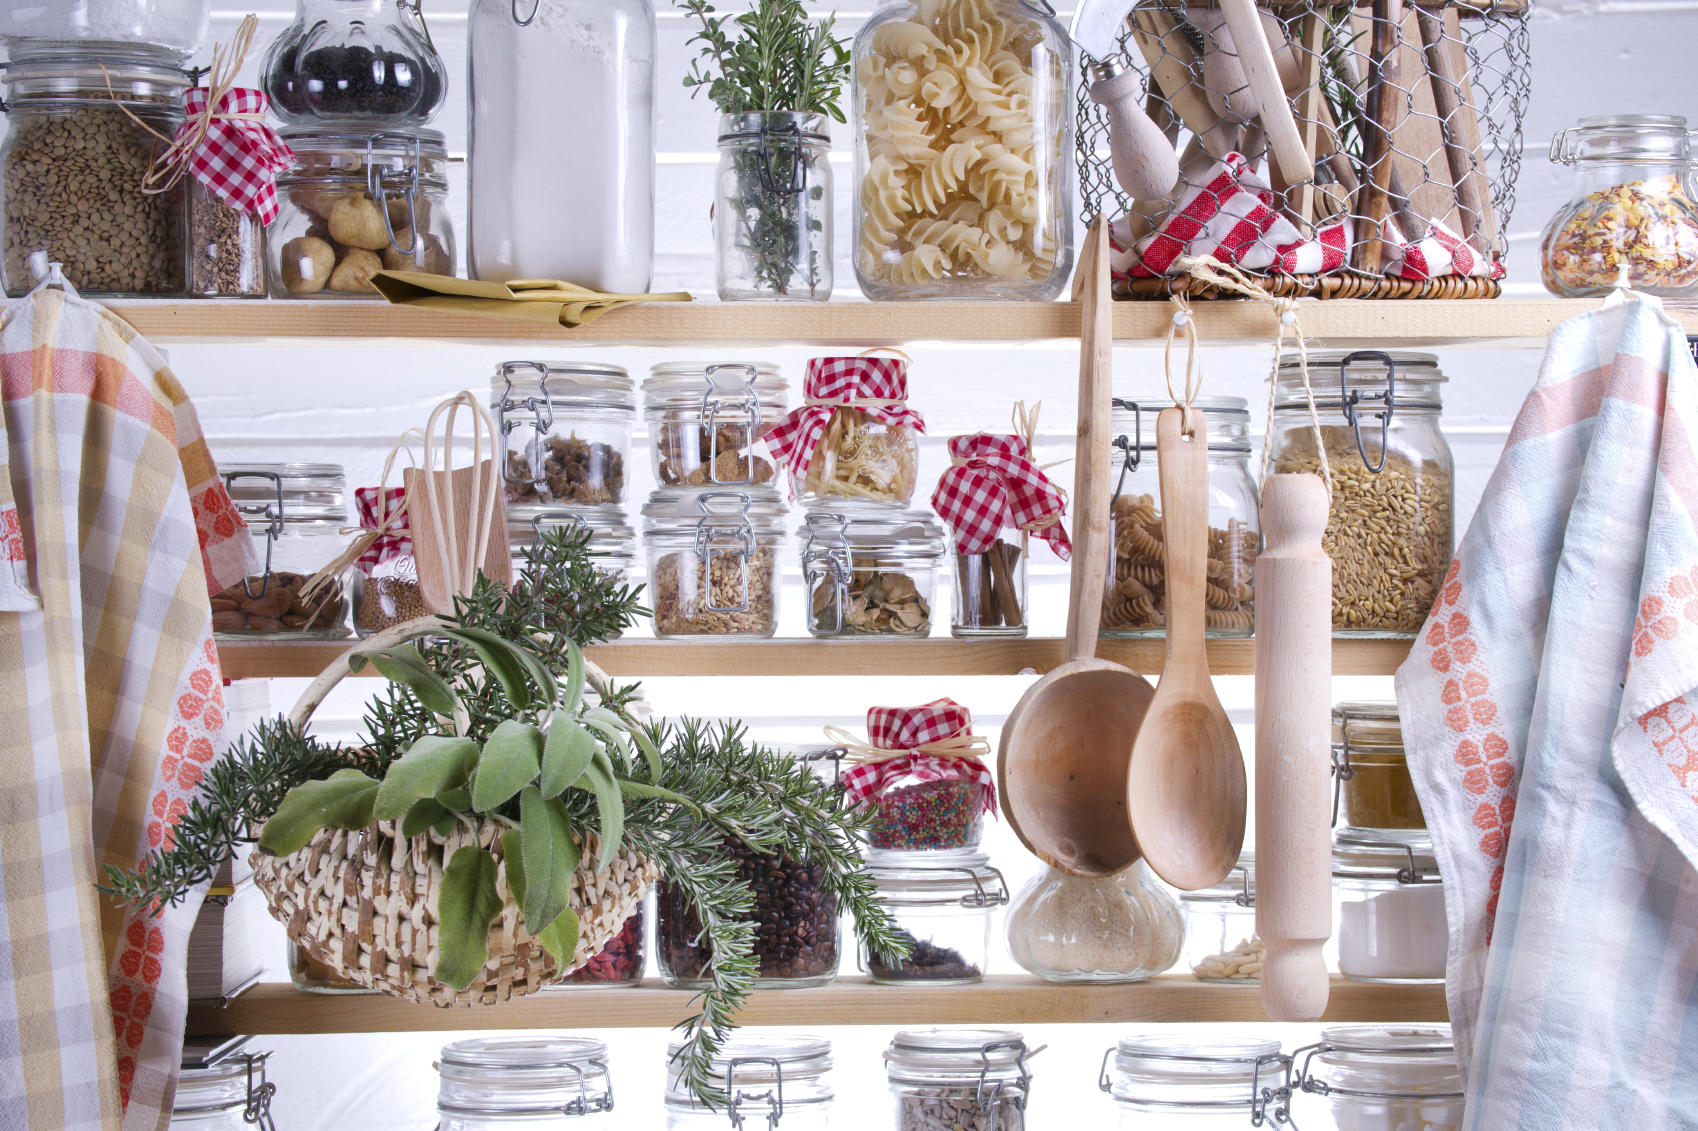 35 Ingenious Tricks For Organizing Small Spaces